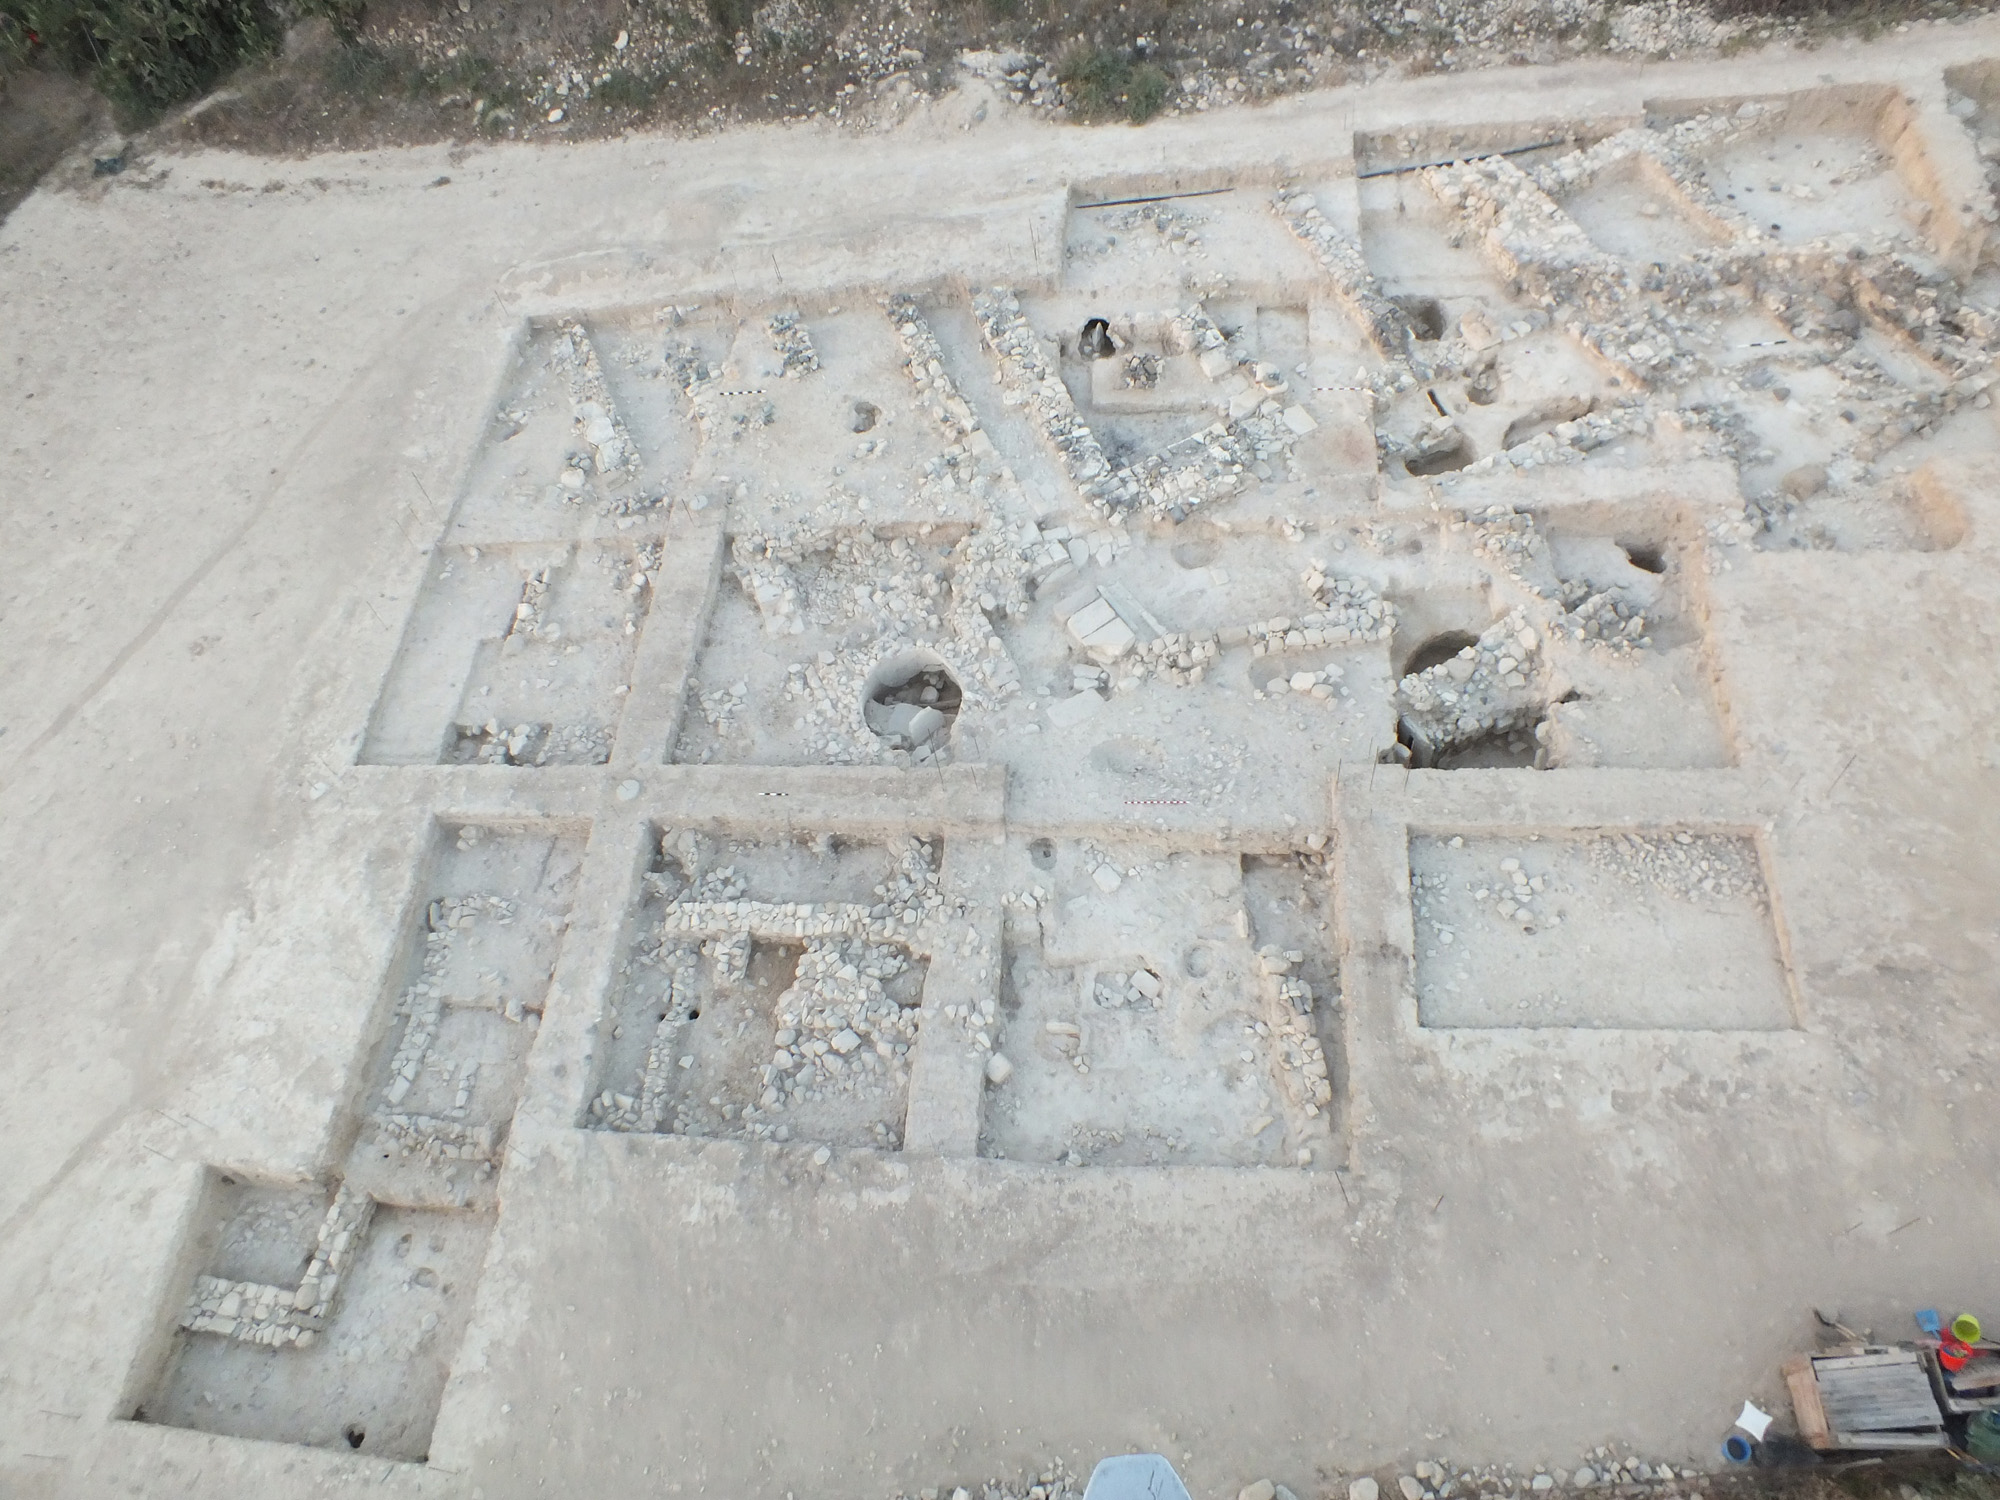 Excavations at ancient Idalion, 2014